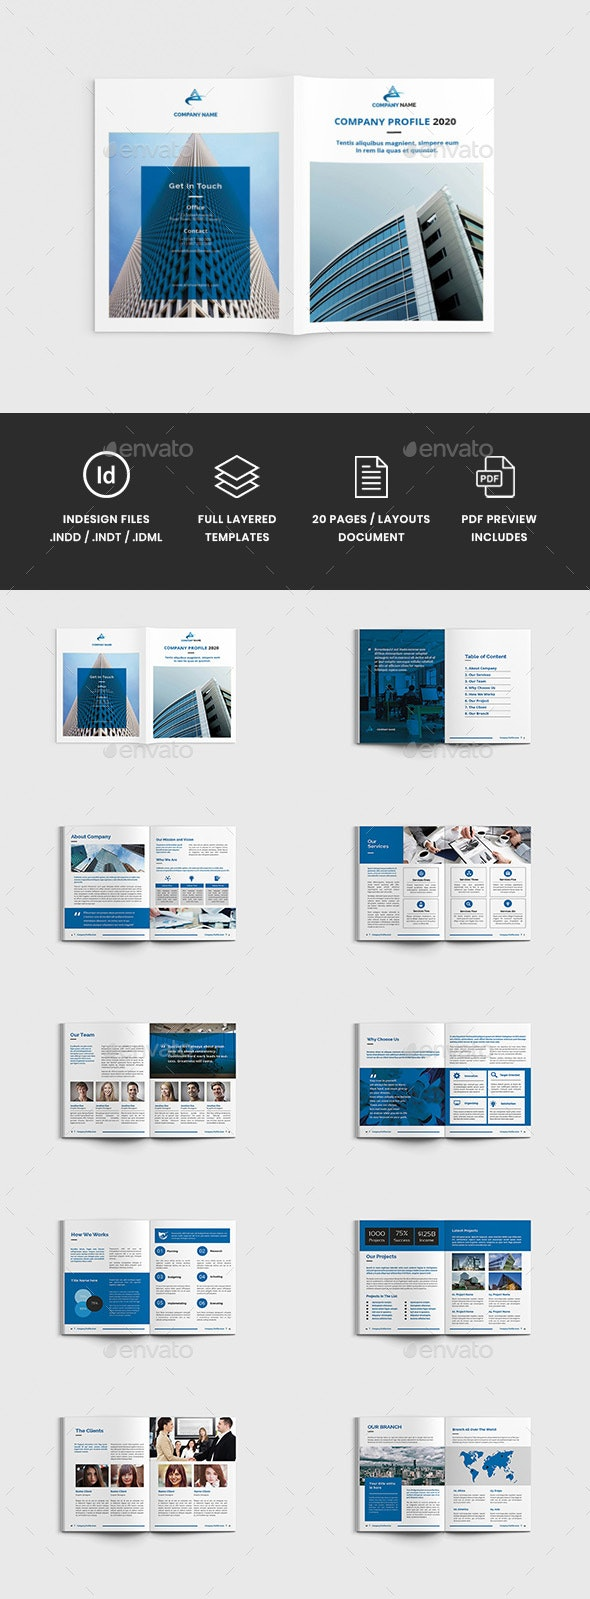 Workz - A4 Business Brochure Template - Corporate Brochures